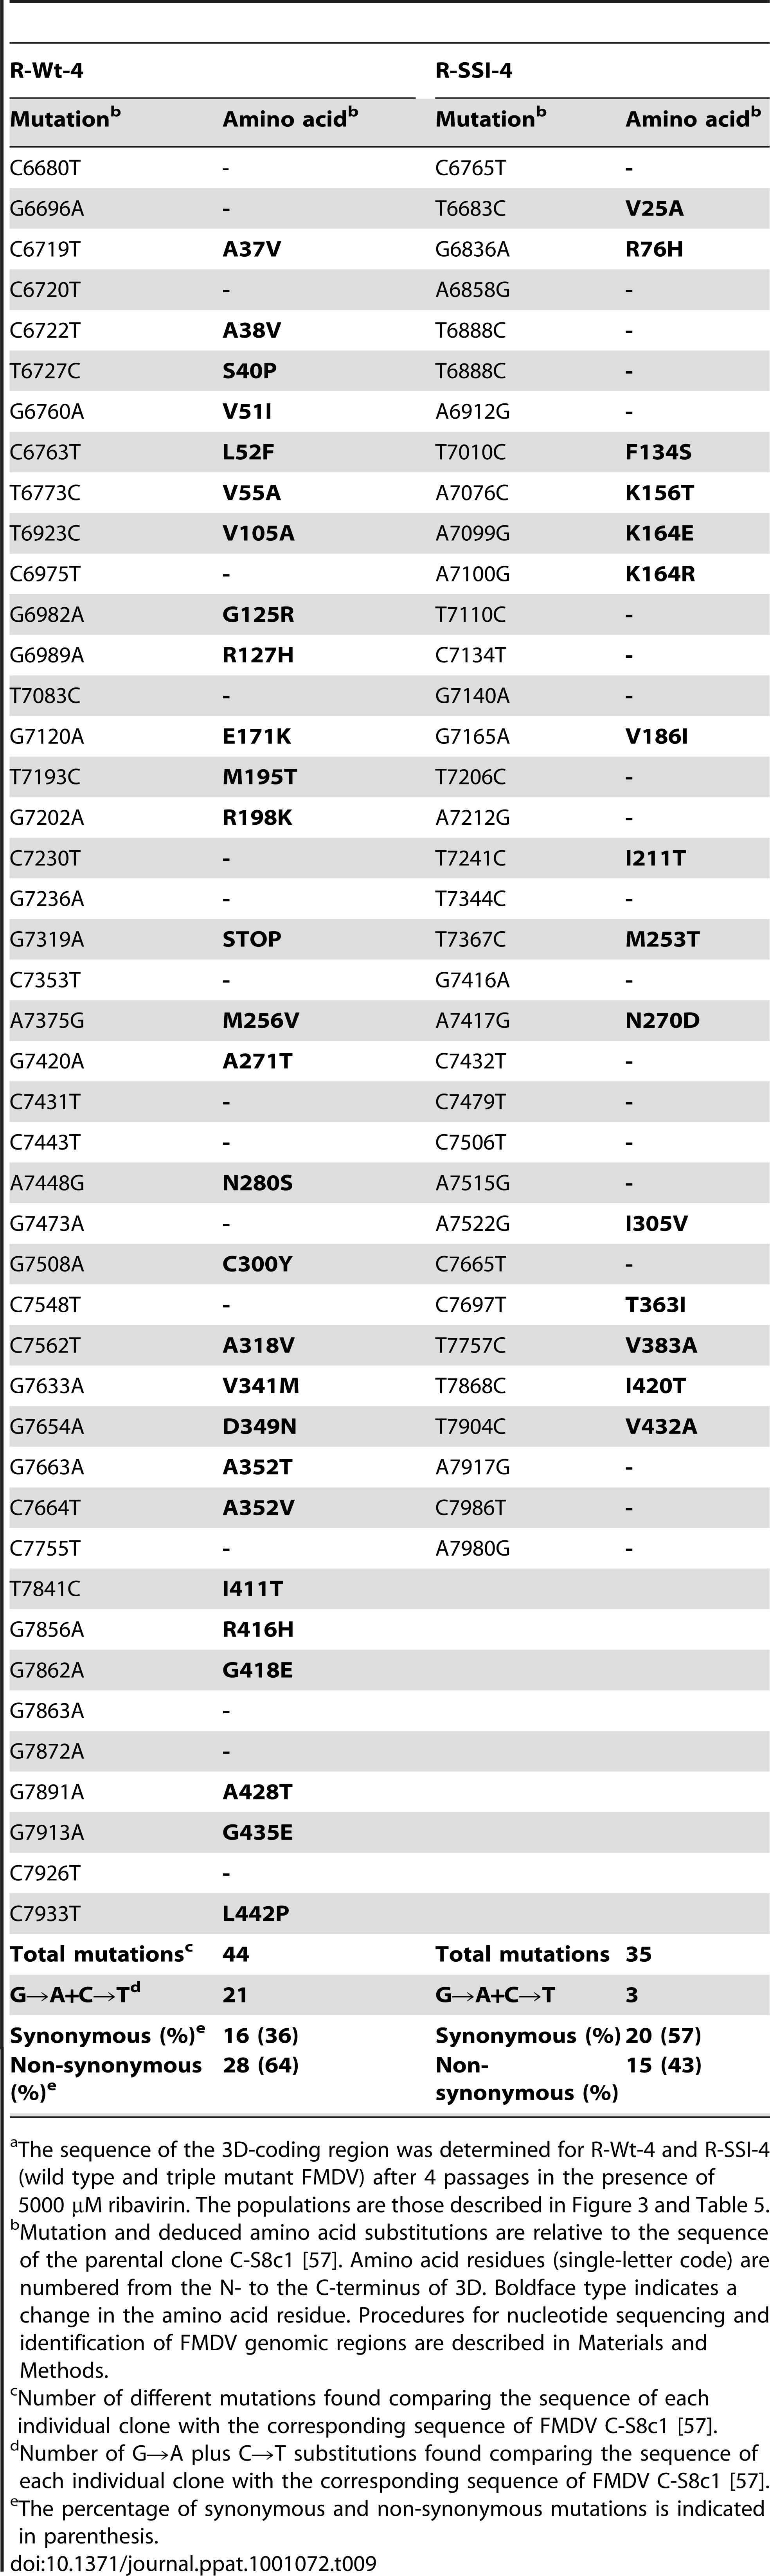 Mutations and corresponding amino acid substitutions in the mutant spectra FMDV R-Wt-4 and R-SSI-4 passaged in the presence of ribavirin<em class=&quot;ref&quot;>a</em>.